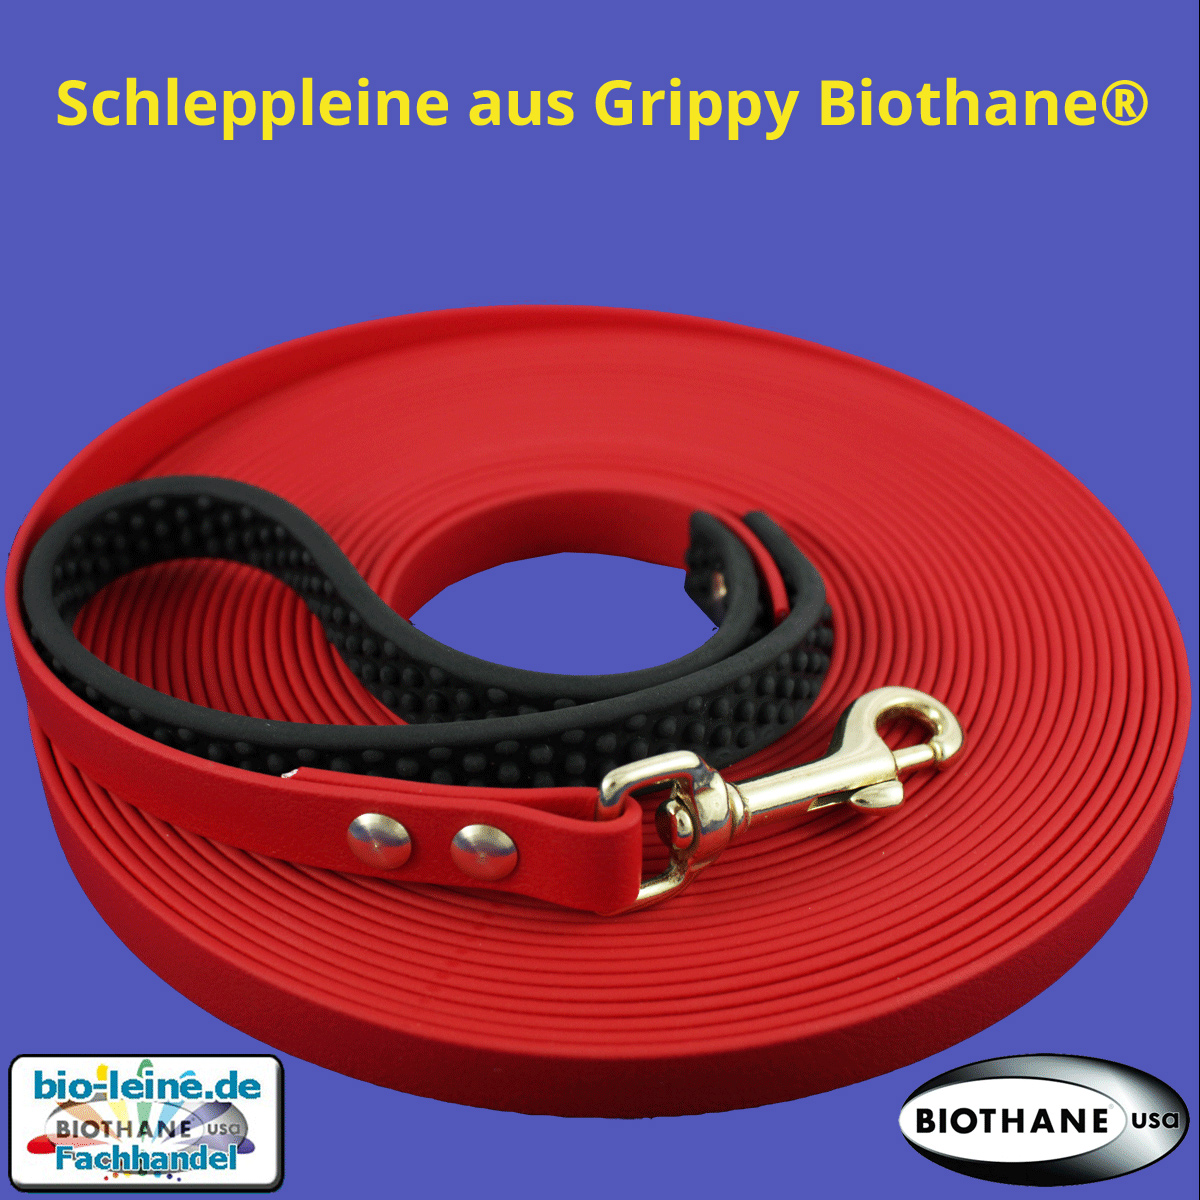 images/produkte/schleppleinen_grippy_mit/fwsl454messing1.jpg